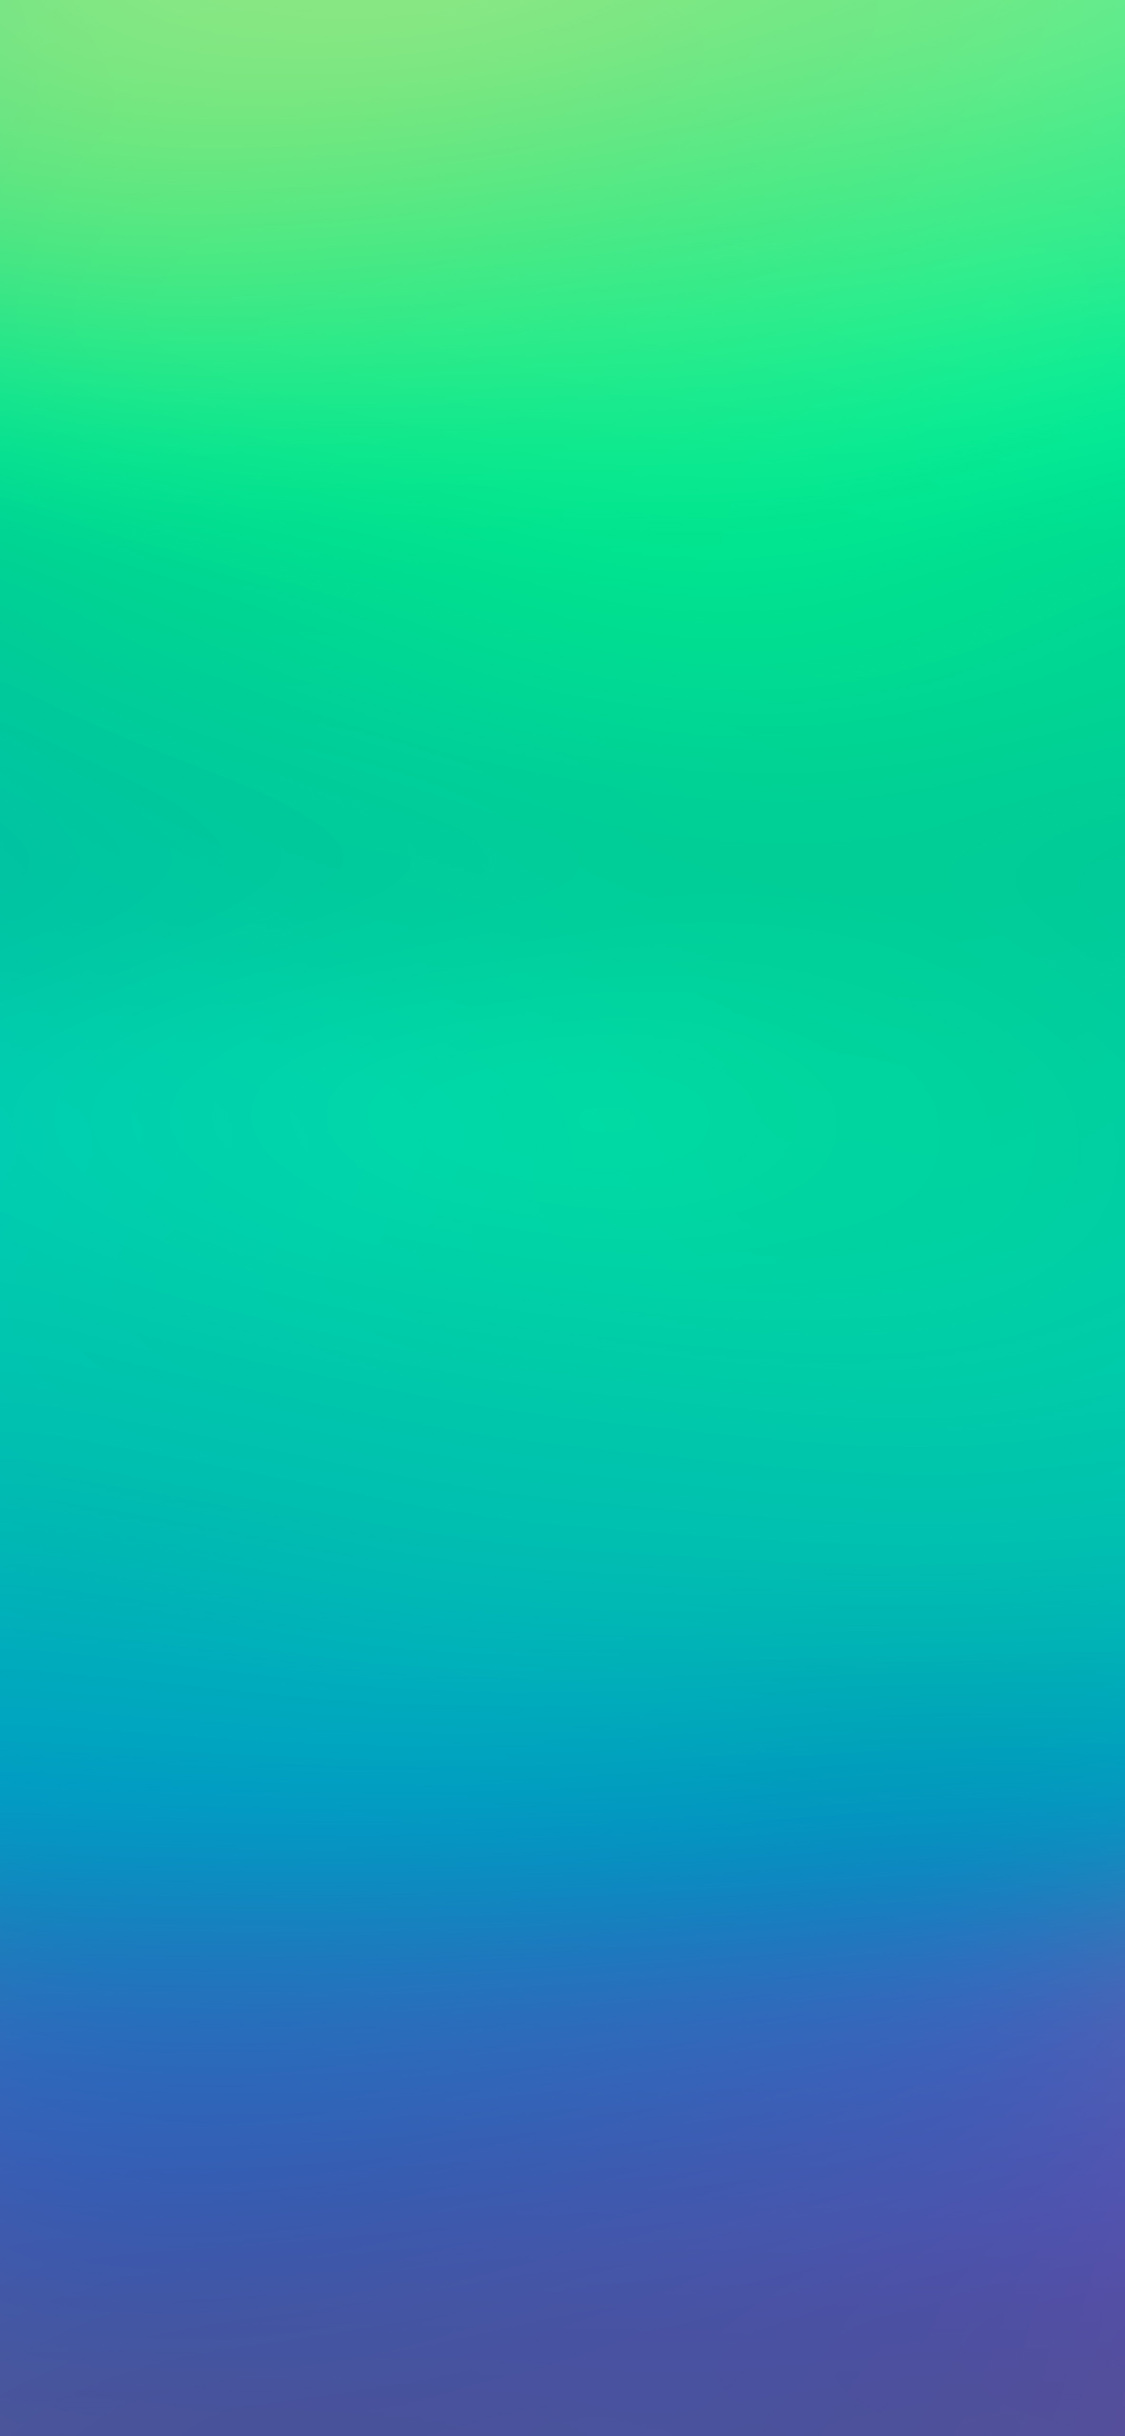 iPhoneXpapers.com-Apple-iPhone-wallpaper-sk53-fantastic-green-blue-blur-gradation